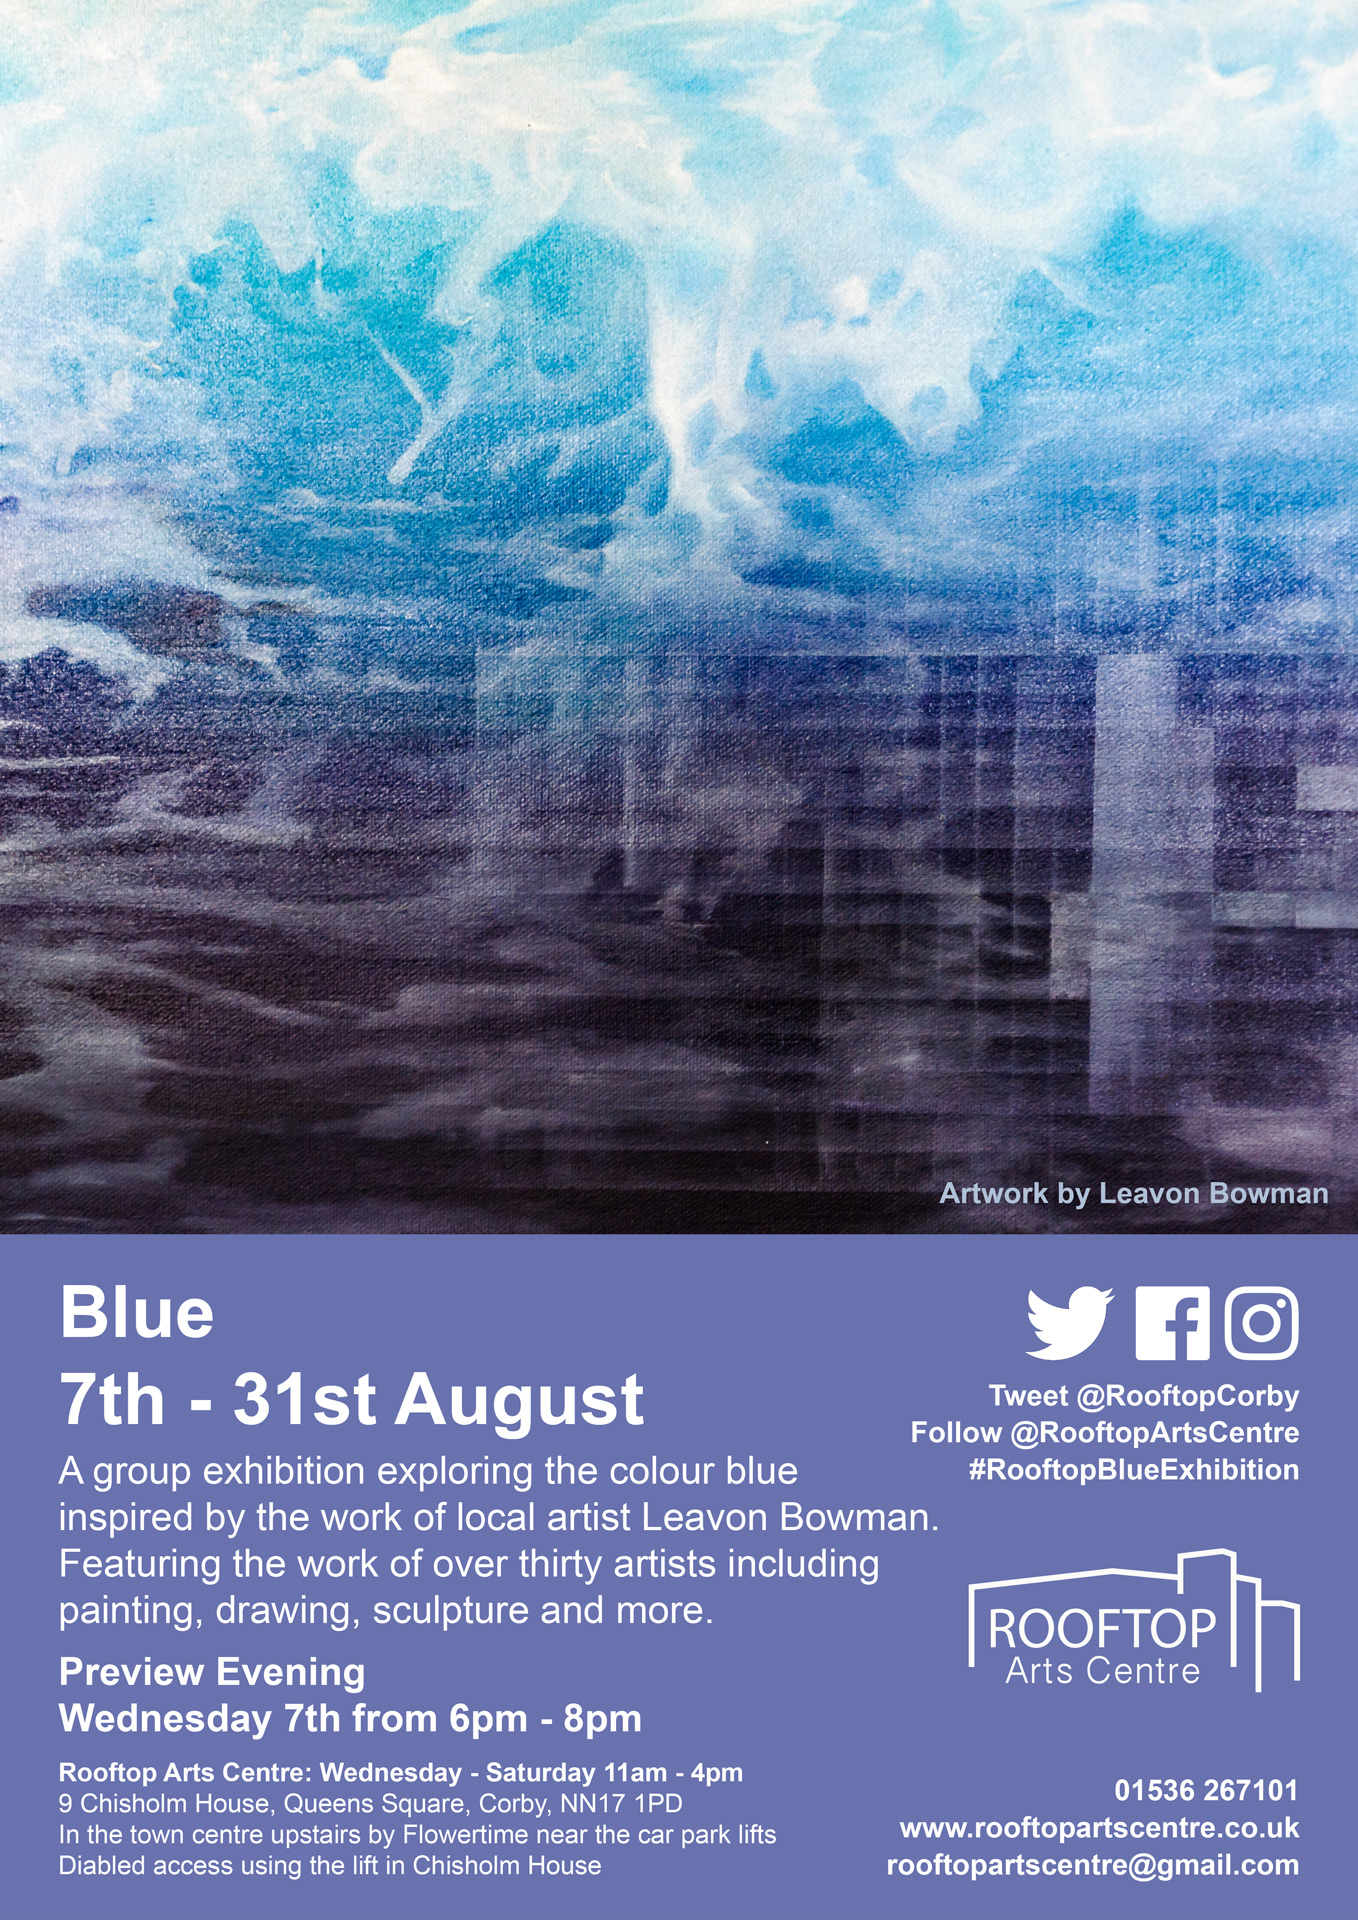 - Blue Collective ExhibitionCorby, United Kingdom7 August - 31 August 2019